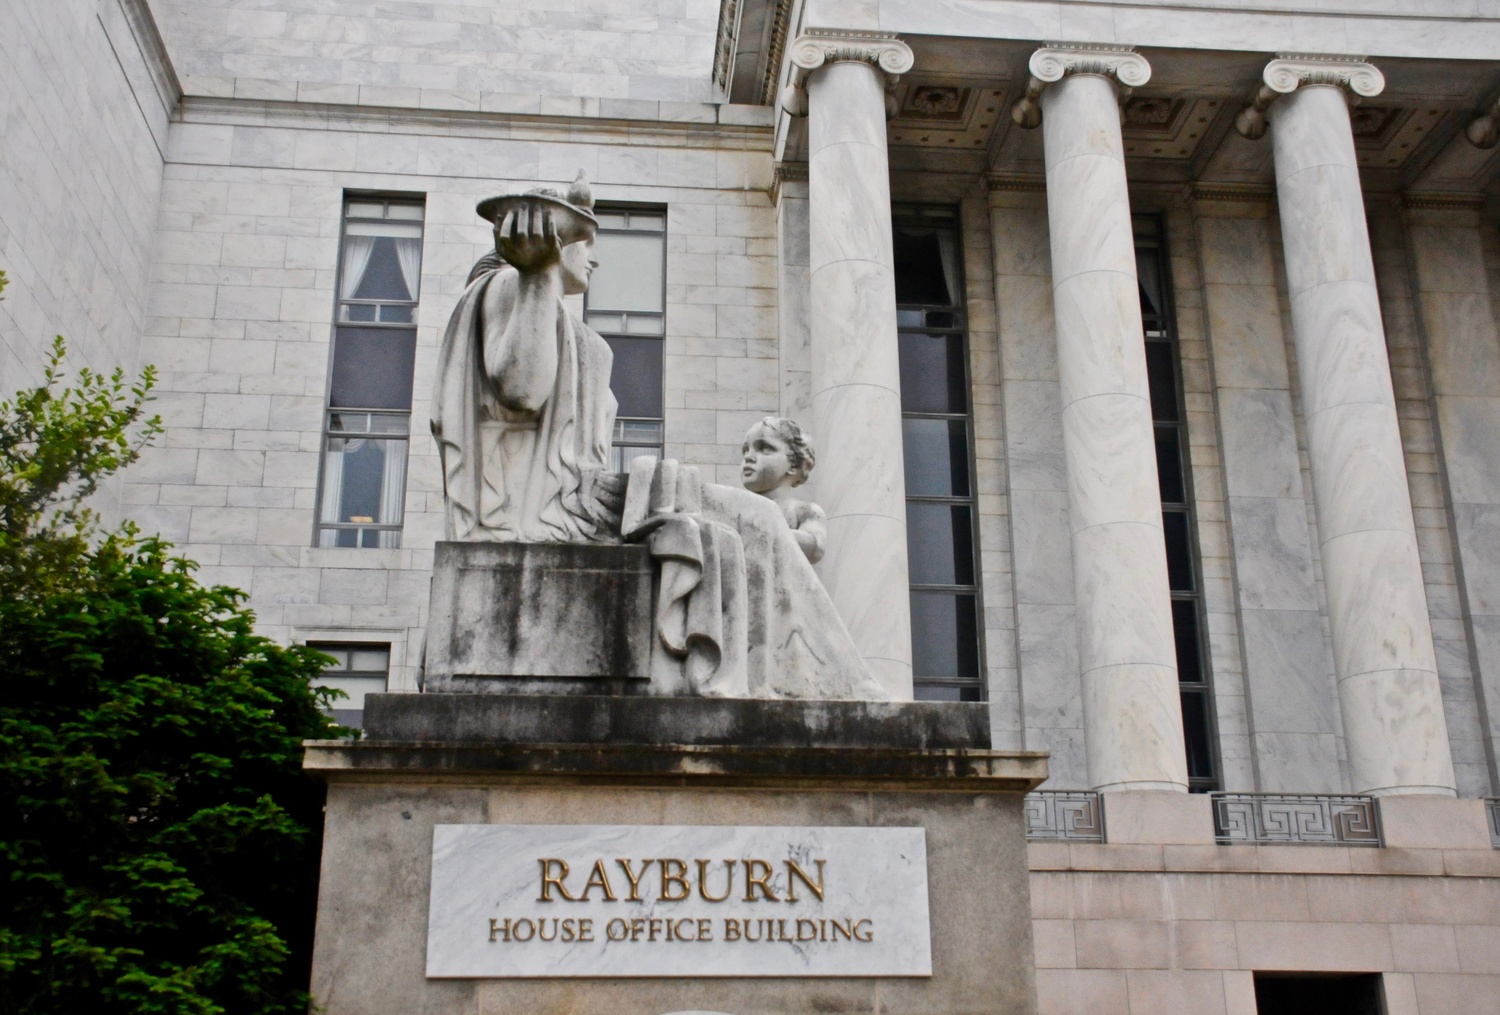 Rayburn House Office Building